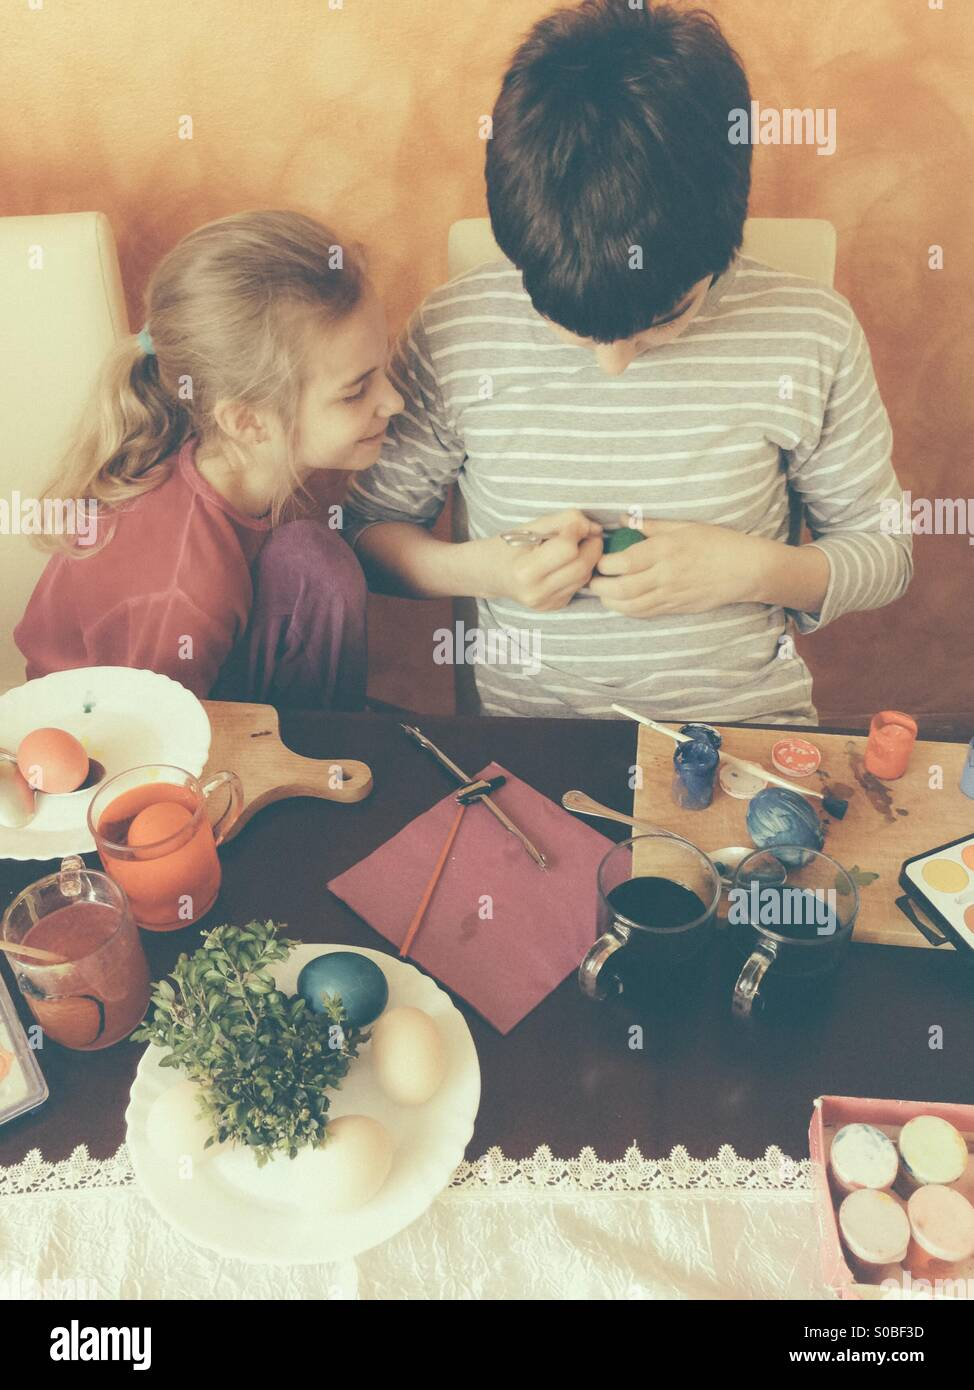 Brother and sister painting Easter eggs at home - Stock Image